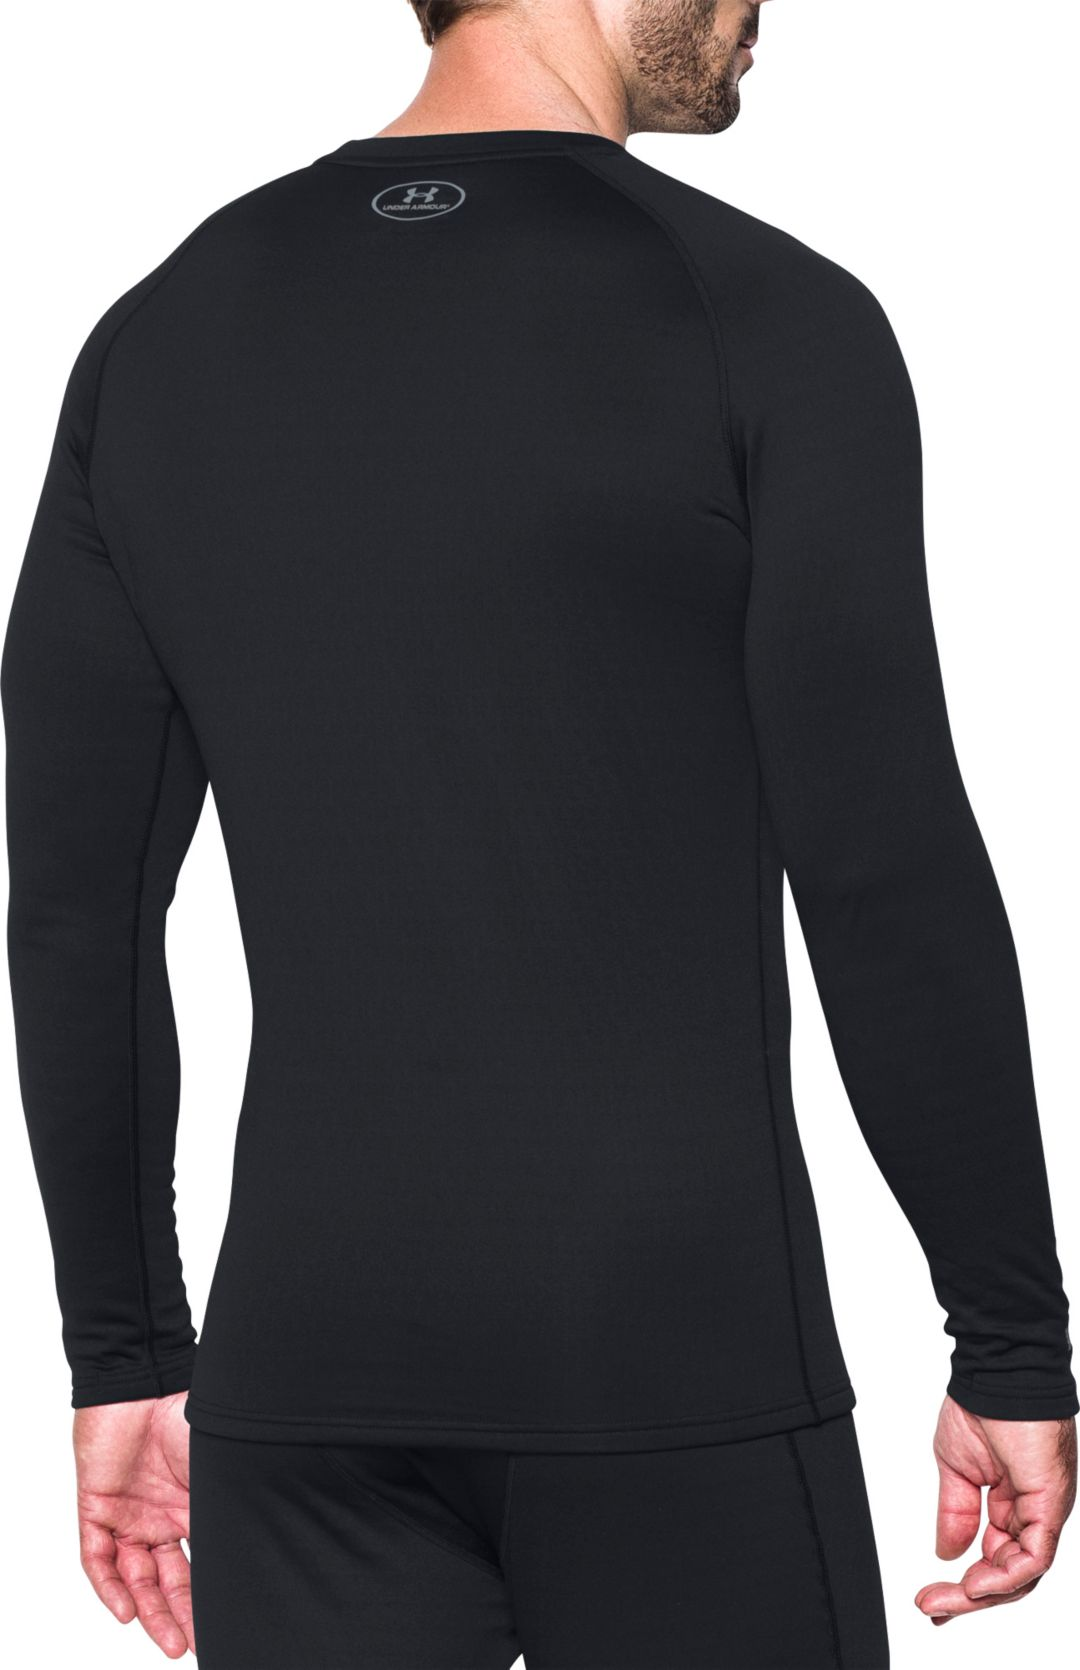 d5e732039 Under Armour Men's 4.0 Crew Base Layer Shirt | DICK'S Sporting Goods